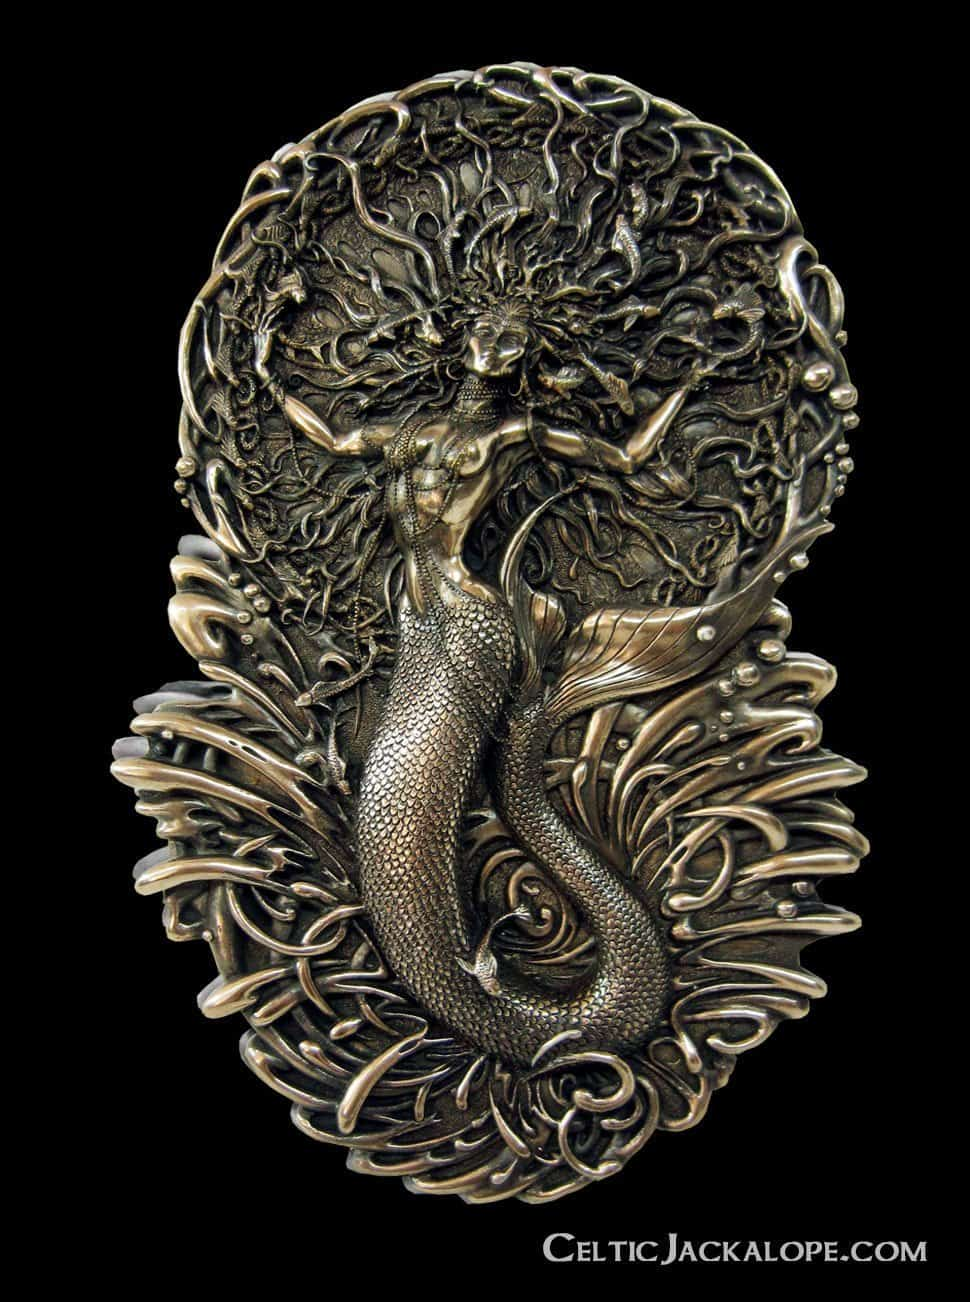 Celtic Mermaid Goddess Áine Wall Plaque Cold Cast Bronze by Maxine Miller ©celticjackalope.com